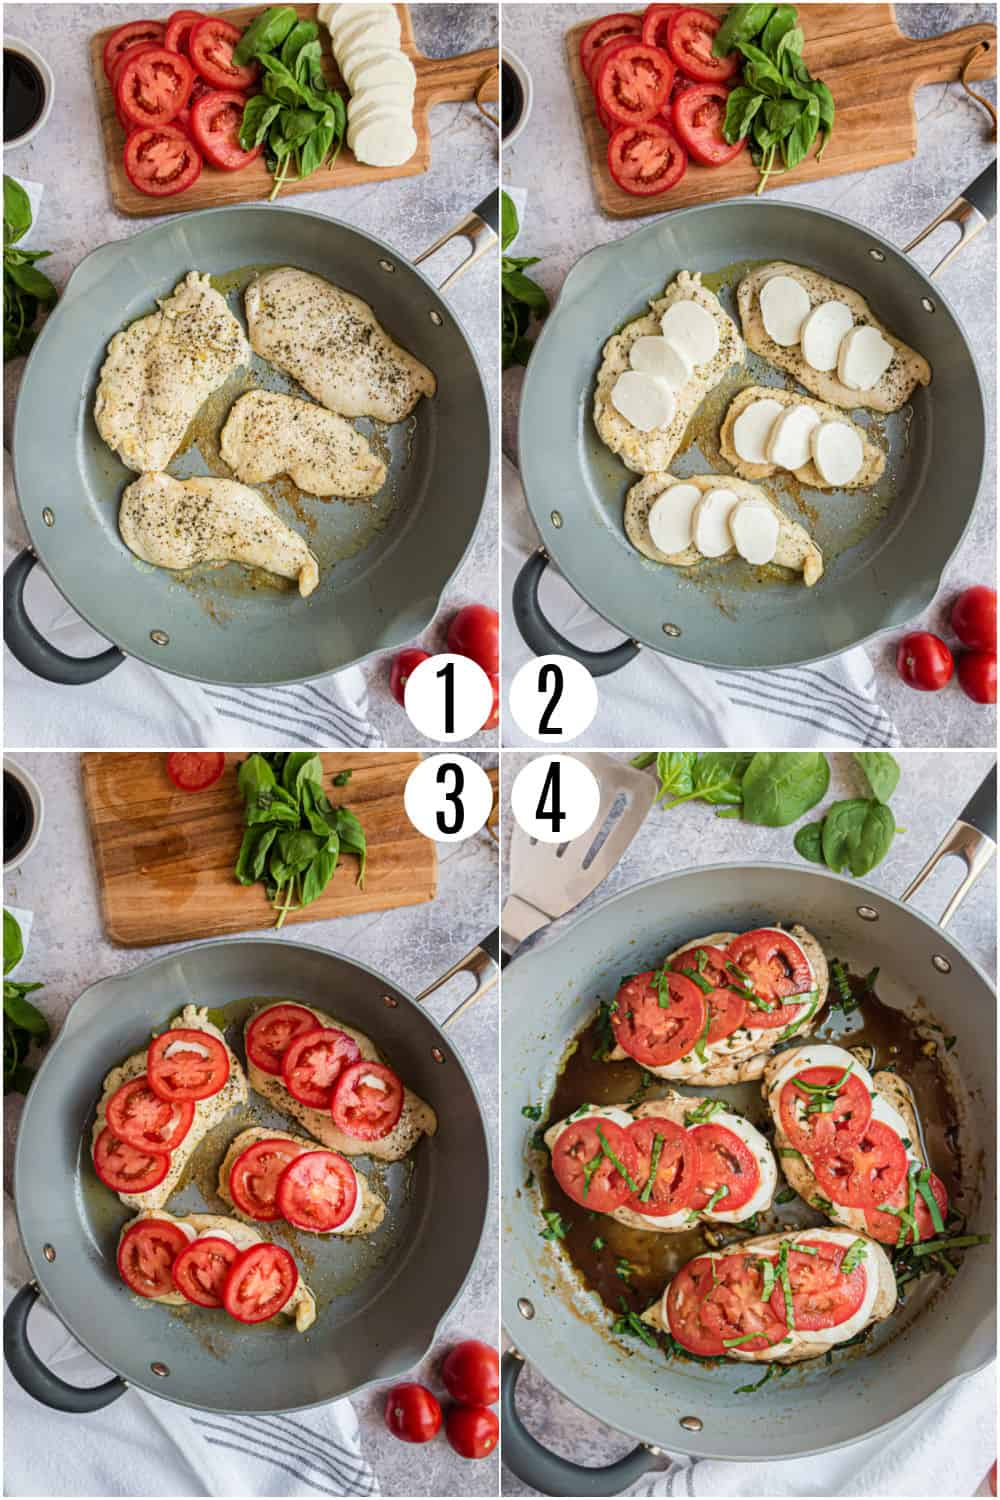 Step by step photos showing how to make chicken caprese in a skillet.